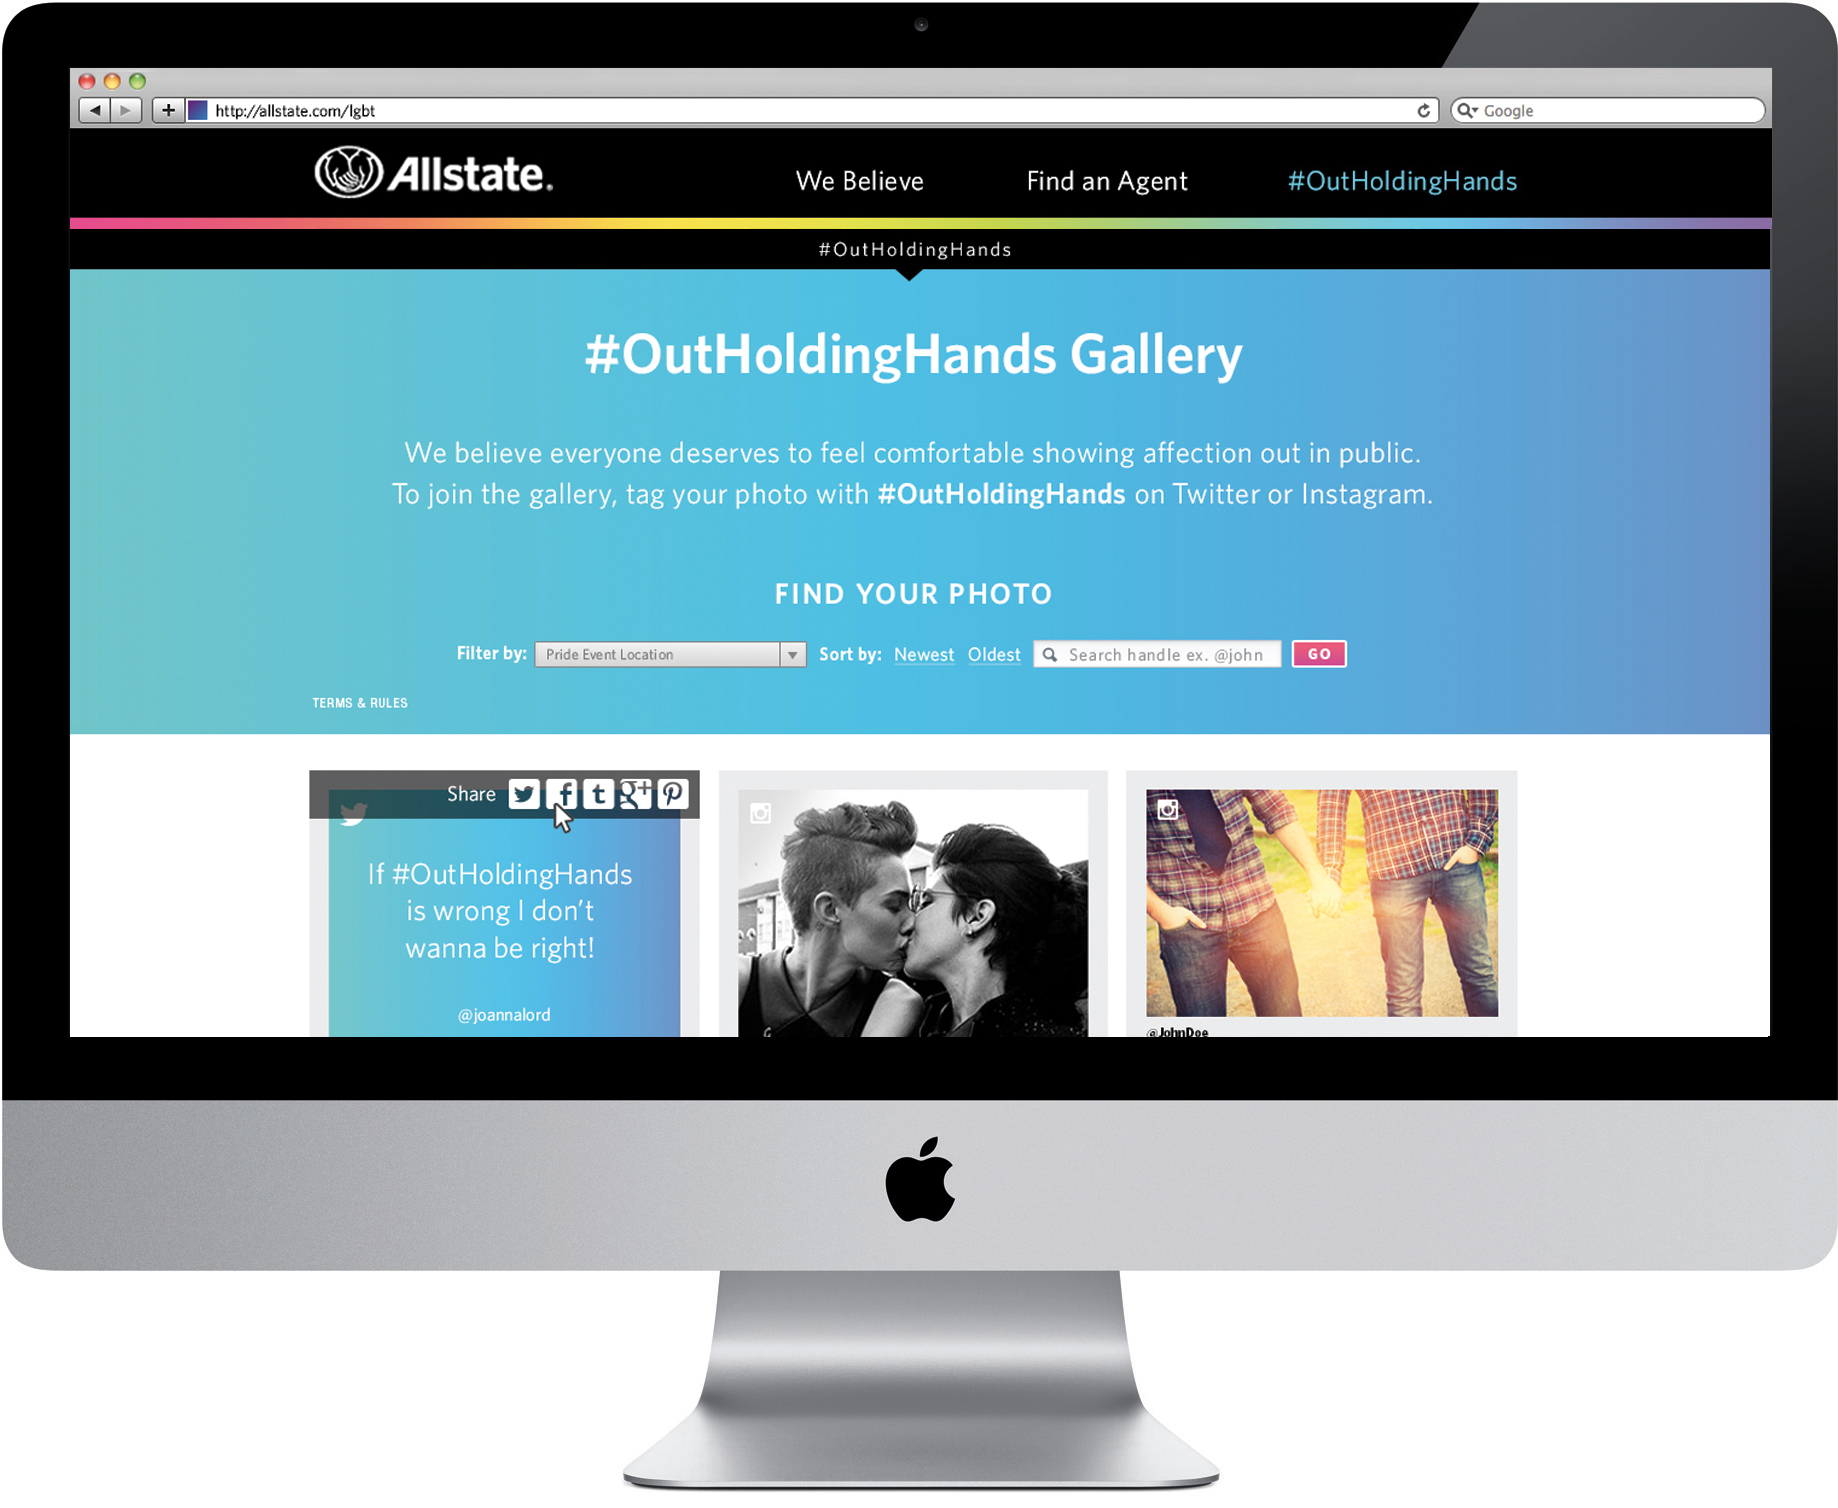 Allstate-LGBT-Website-5.jpg